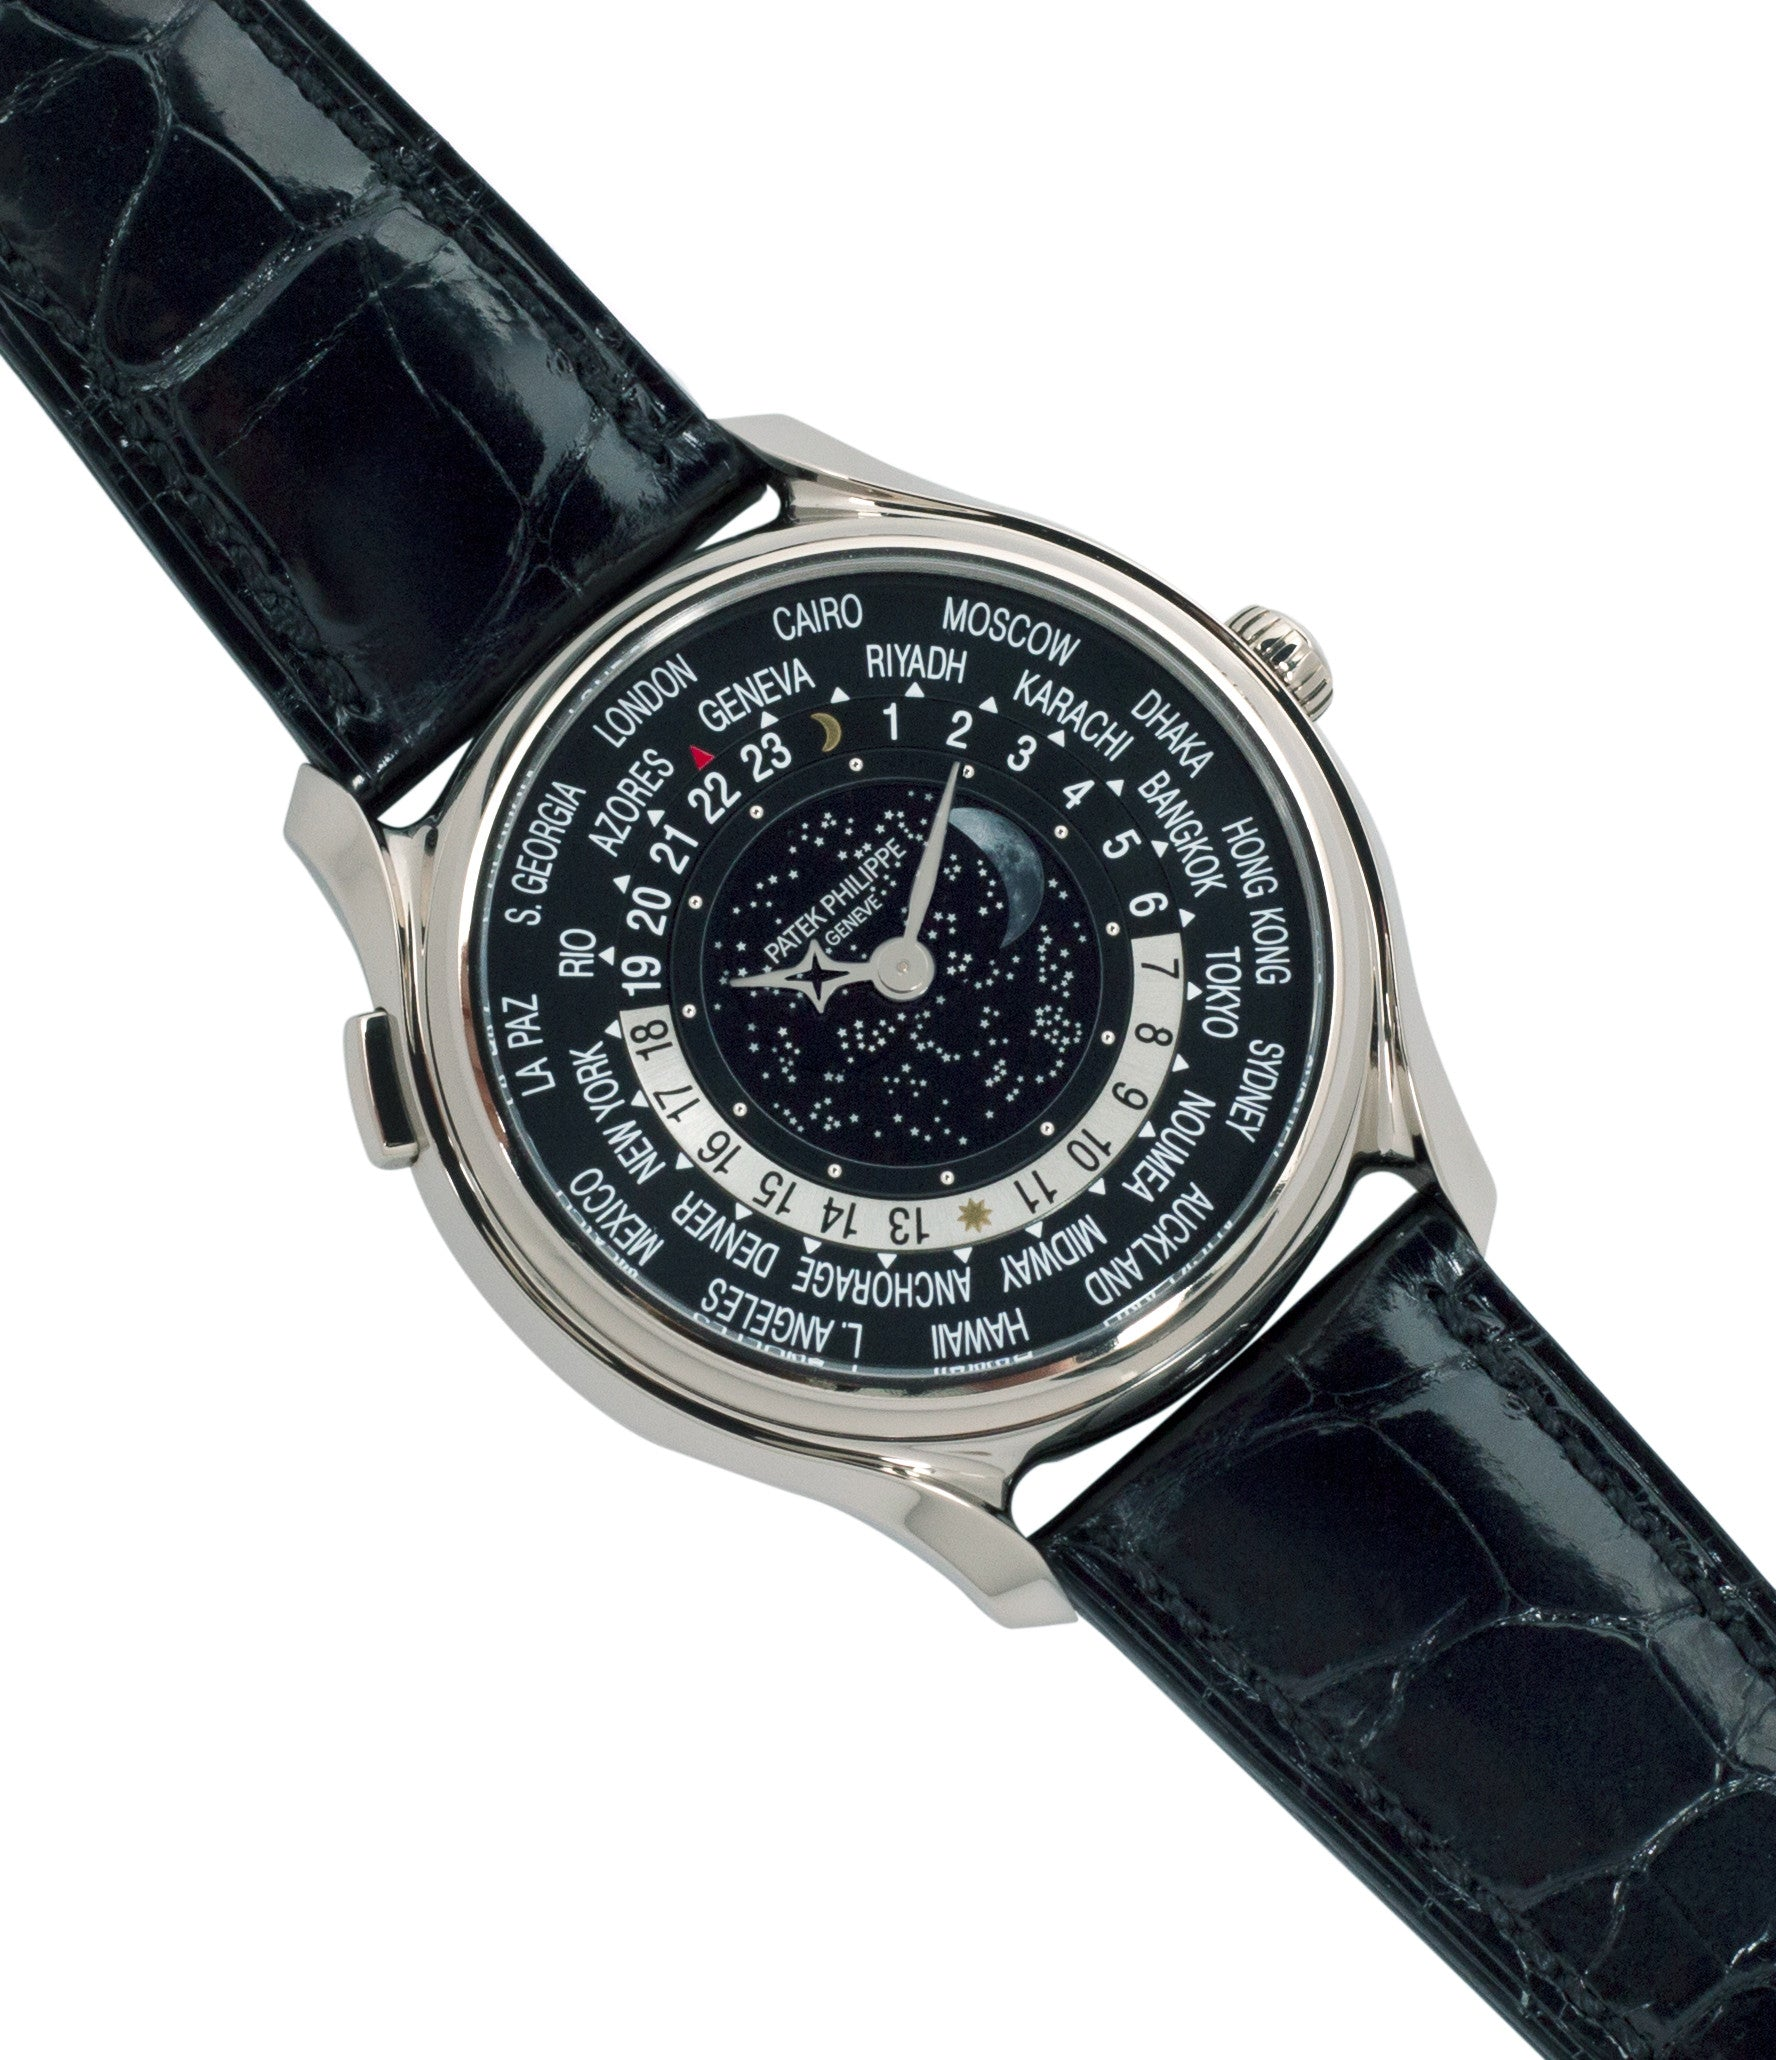 limited edition Patek Philippe Worldtimer Moonphase 5575G 175th Anniversary white gold preowned dress watch for sale online at A Collected Man London rare watch specialist